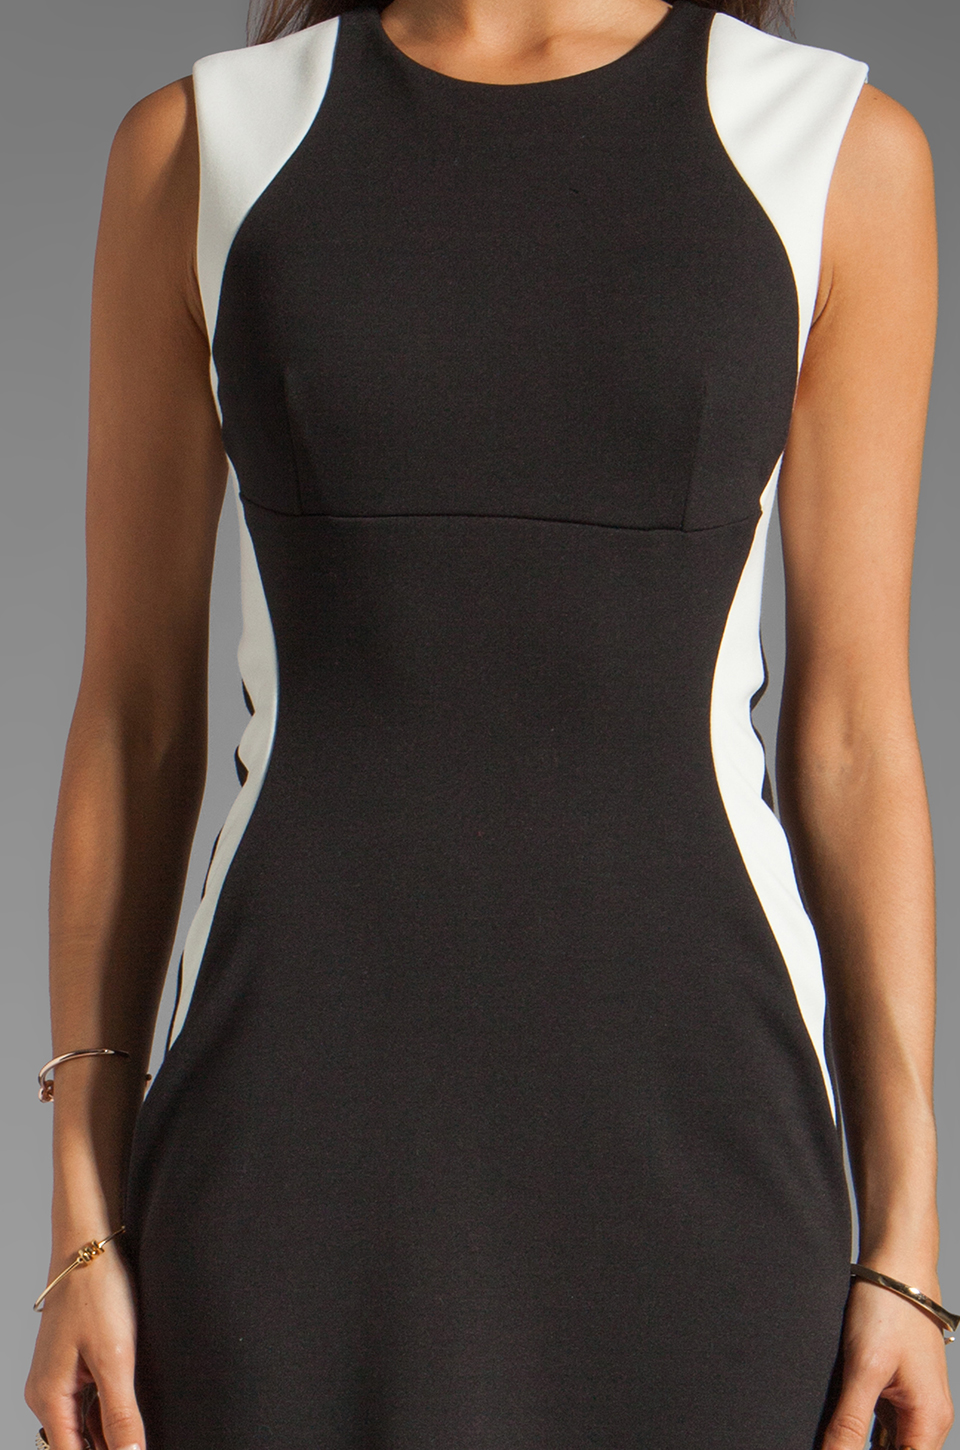 Eight Sixty Slim Illusion Dress in Vanilla/Black